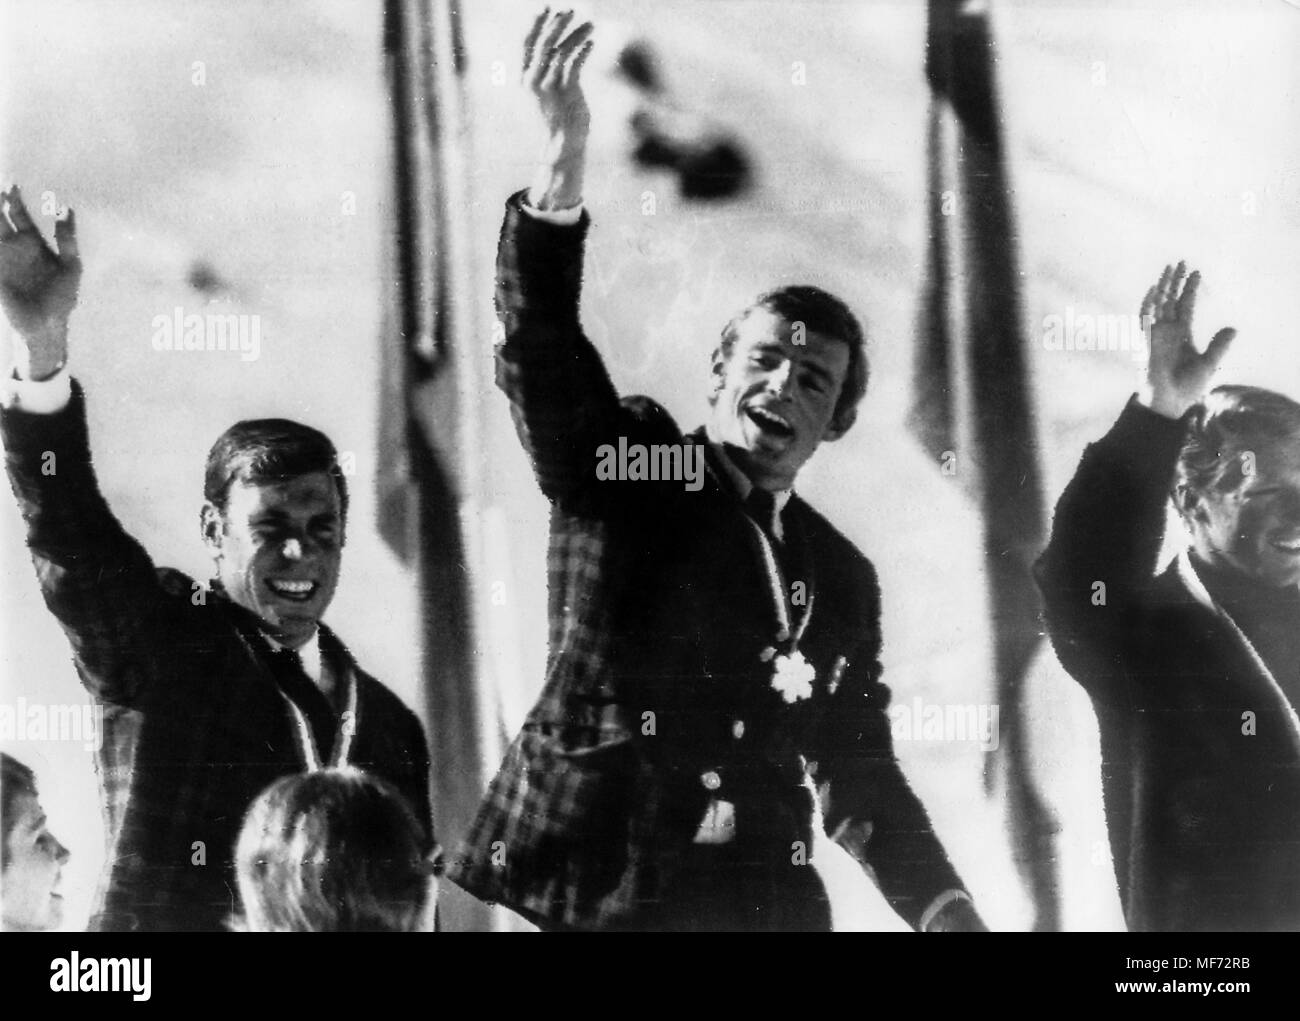 jean claude killy, leo lacroix, ludwig leitner, alpine skiing world championships, portillo, chile, 15 august 1966 - Stock Image